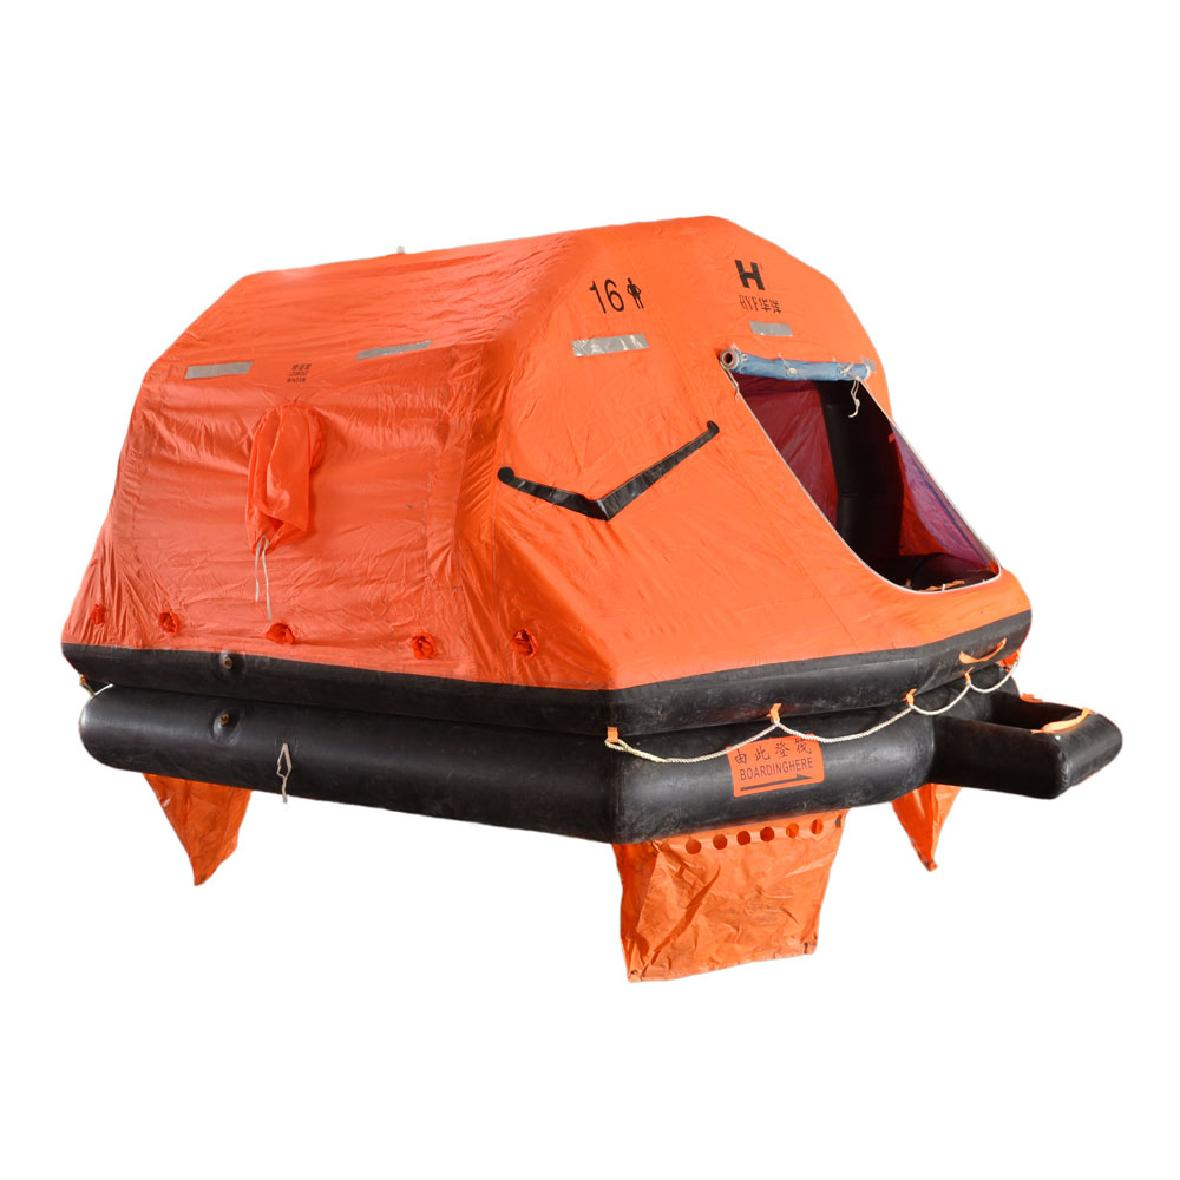 Thow-over Inflatable Life Raft Featured Image